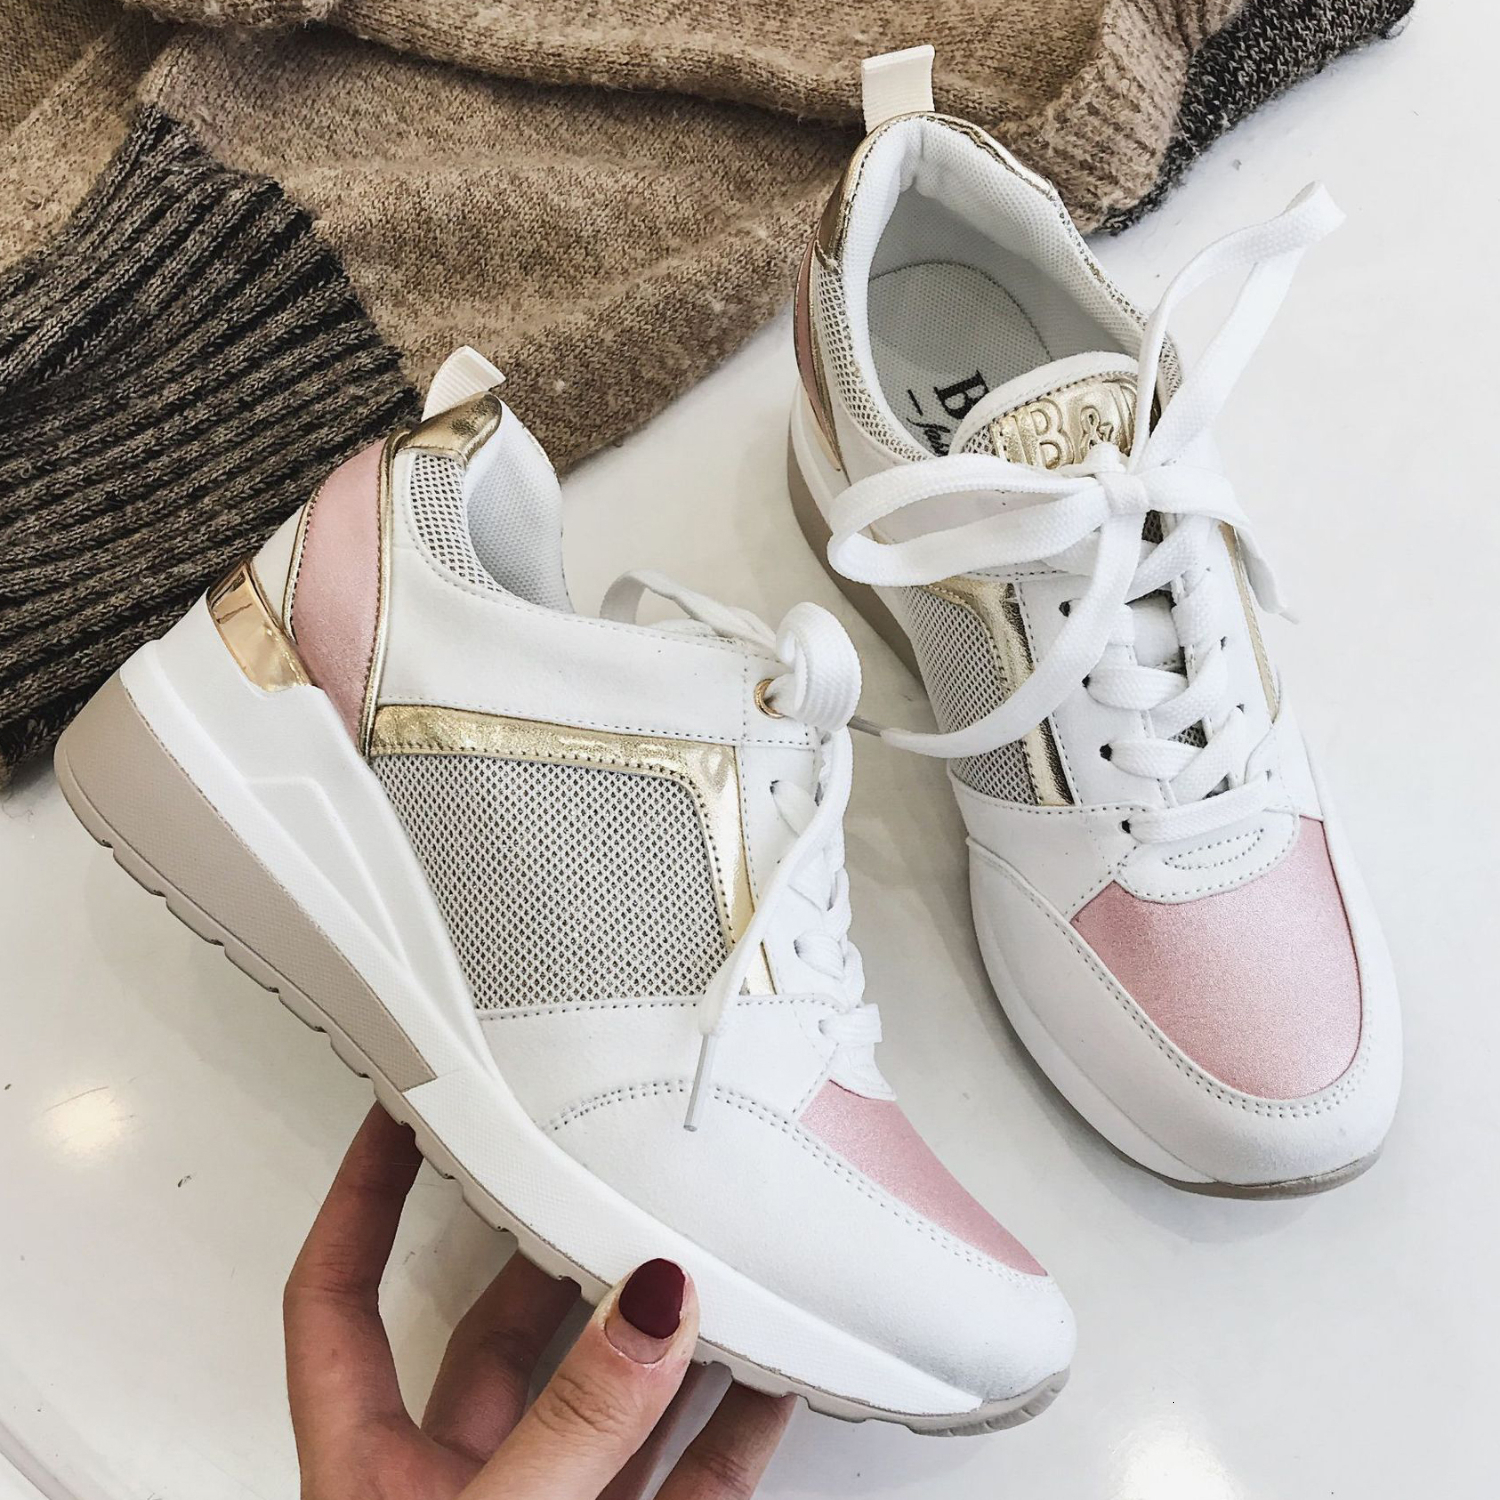 2020 Wedge Sneakers Shiny Bling Design Autumn Winter Elegant Women Shoes Platform Fashion Woman New Brand Casual Style 1